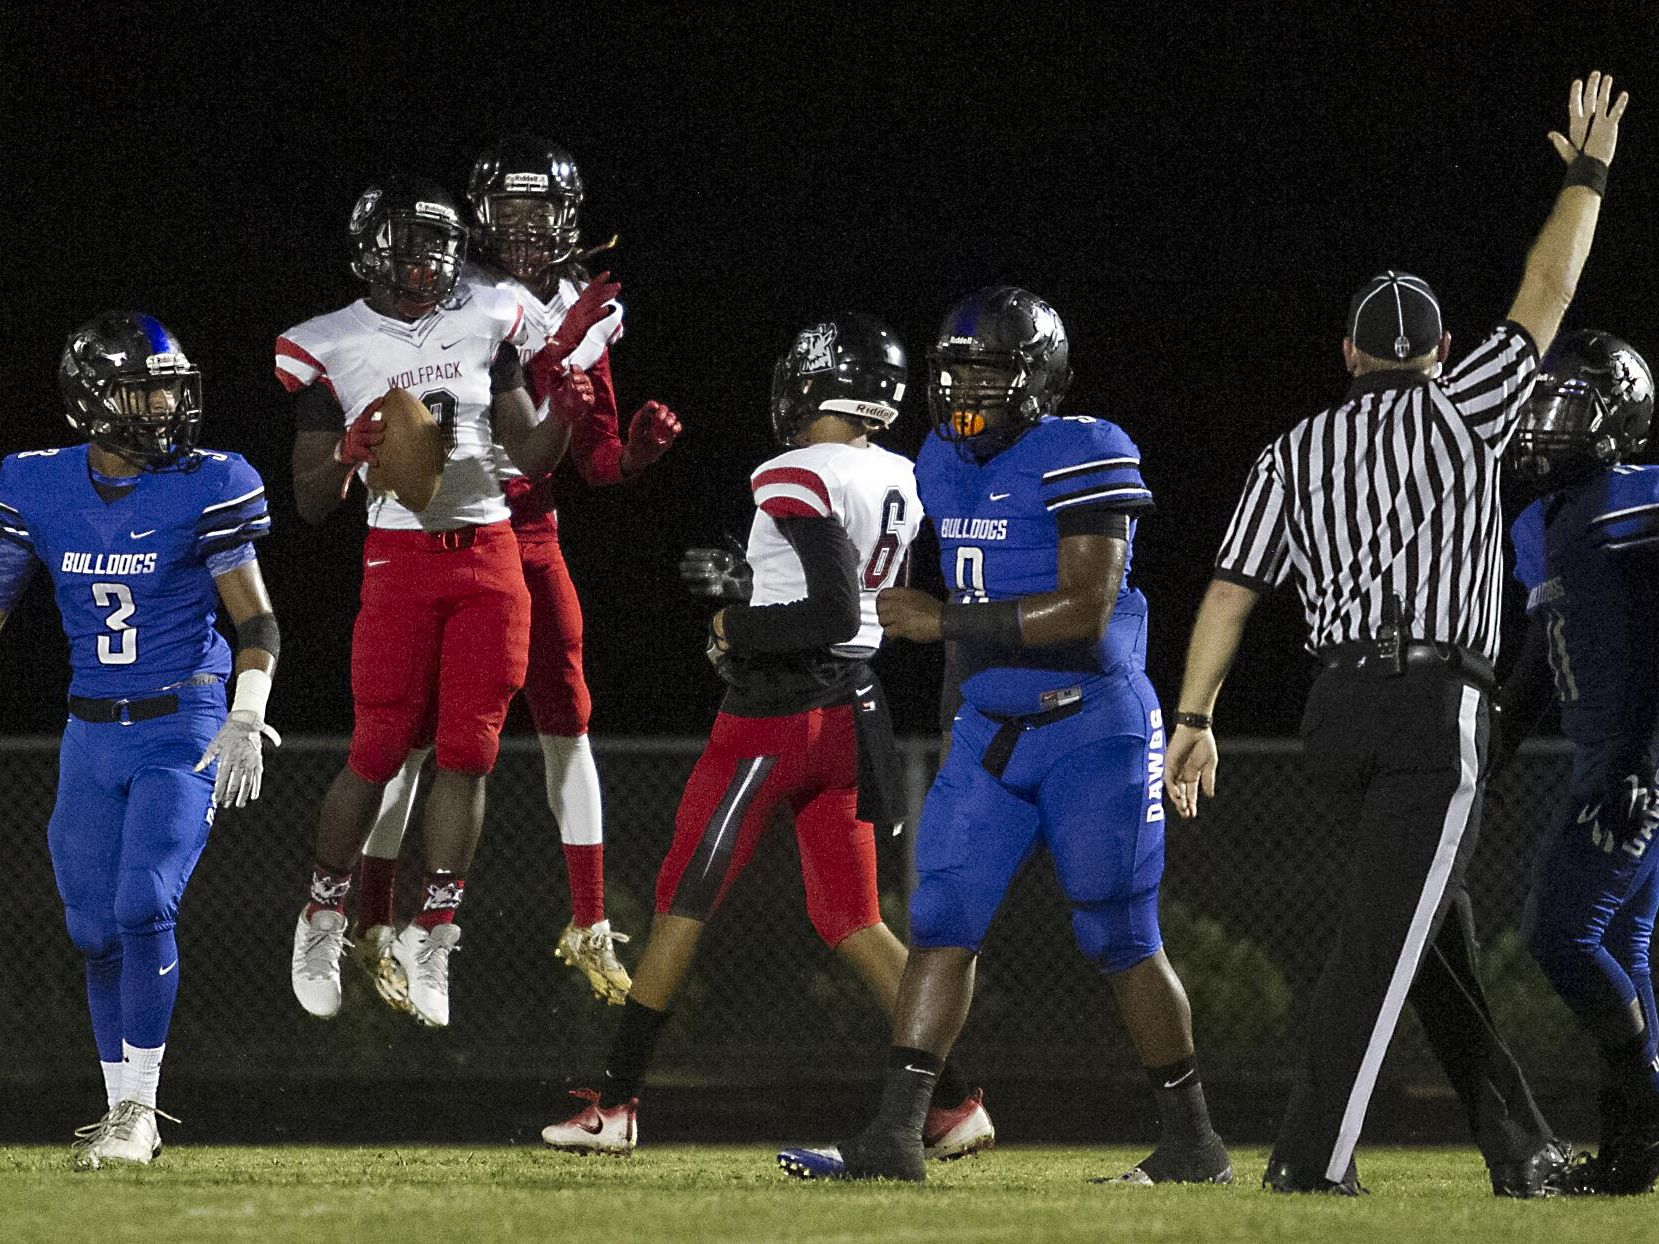 South Fort Myers' E'Quan Dorris celebrates after scoring a touchdown in the first half of his game against the Ida Baker Bulldogs in Cape Coral Friday evening,